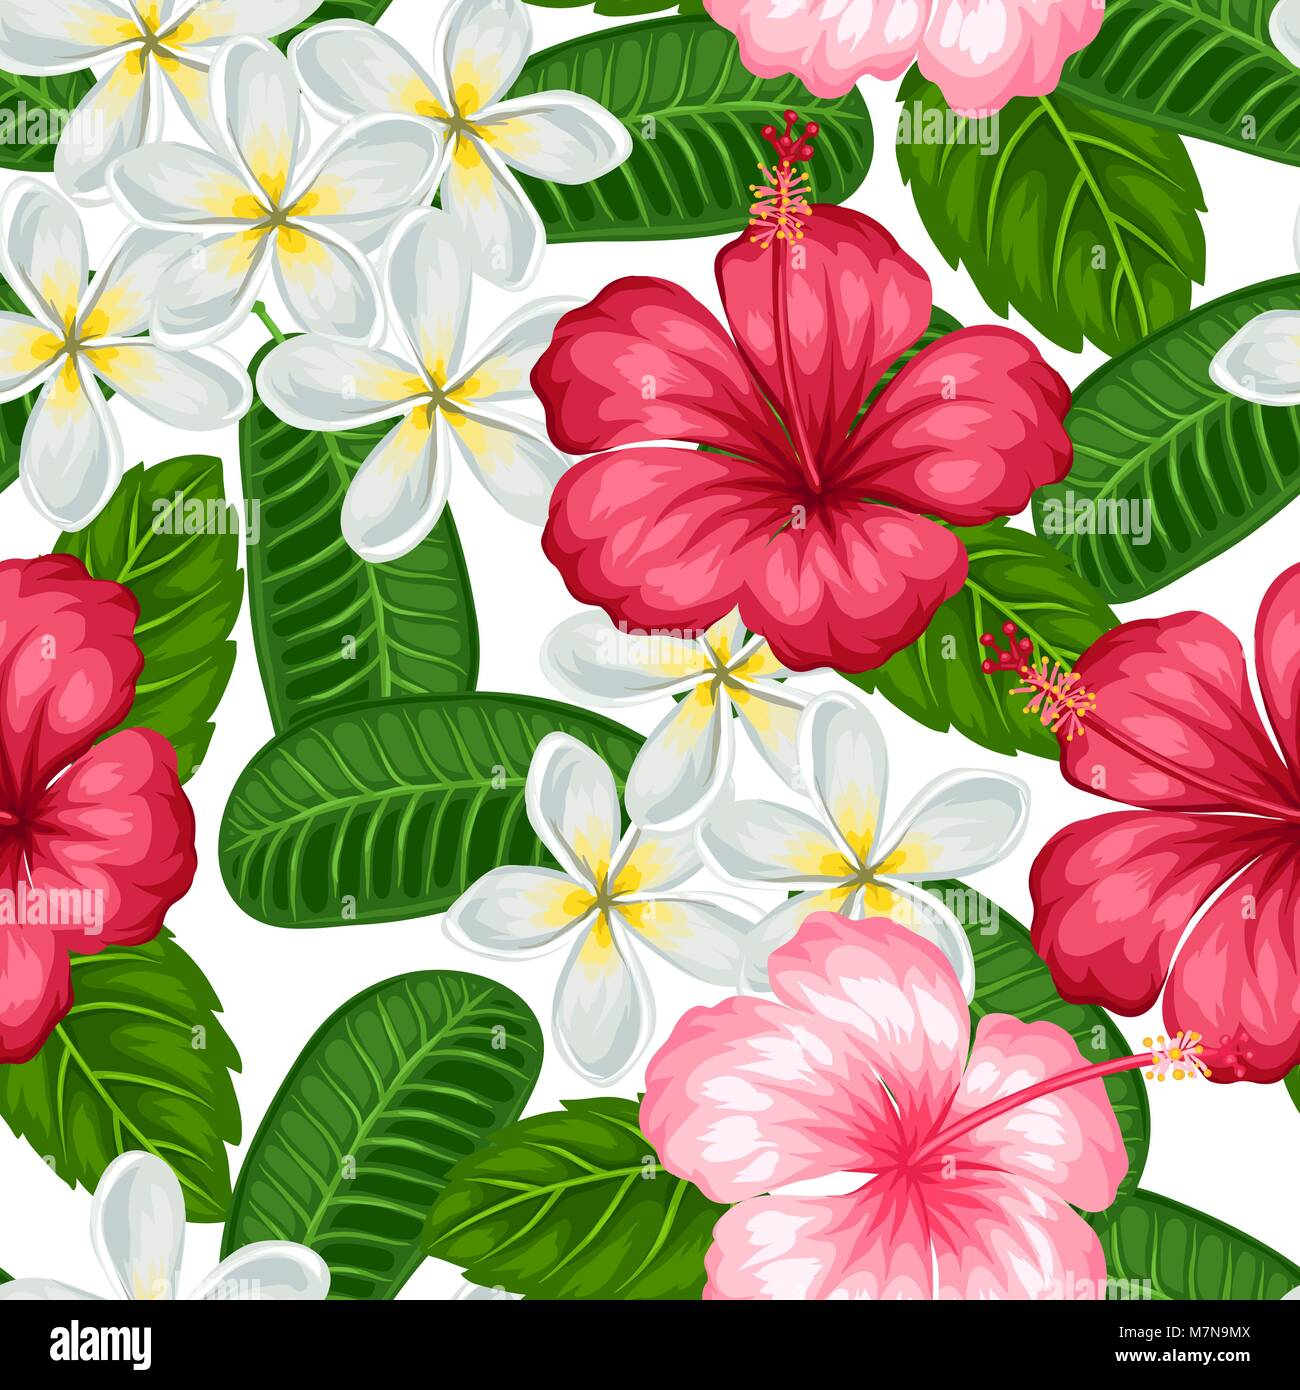 Seamless pattern with tropical flowers hibiscus and plumeria stock seamless pattern with tropical flowers hibiscus and plumeria background made without clipping mask easy to use for backdrop textile wrapping paper izmirmasajfo